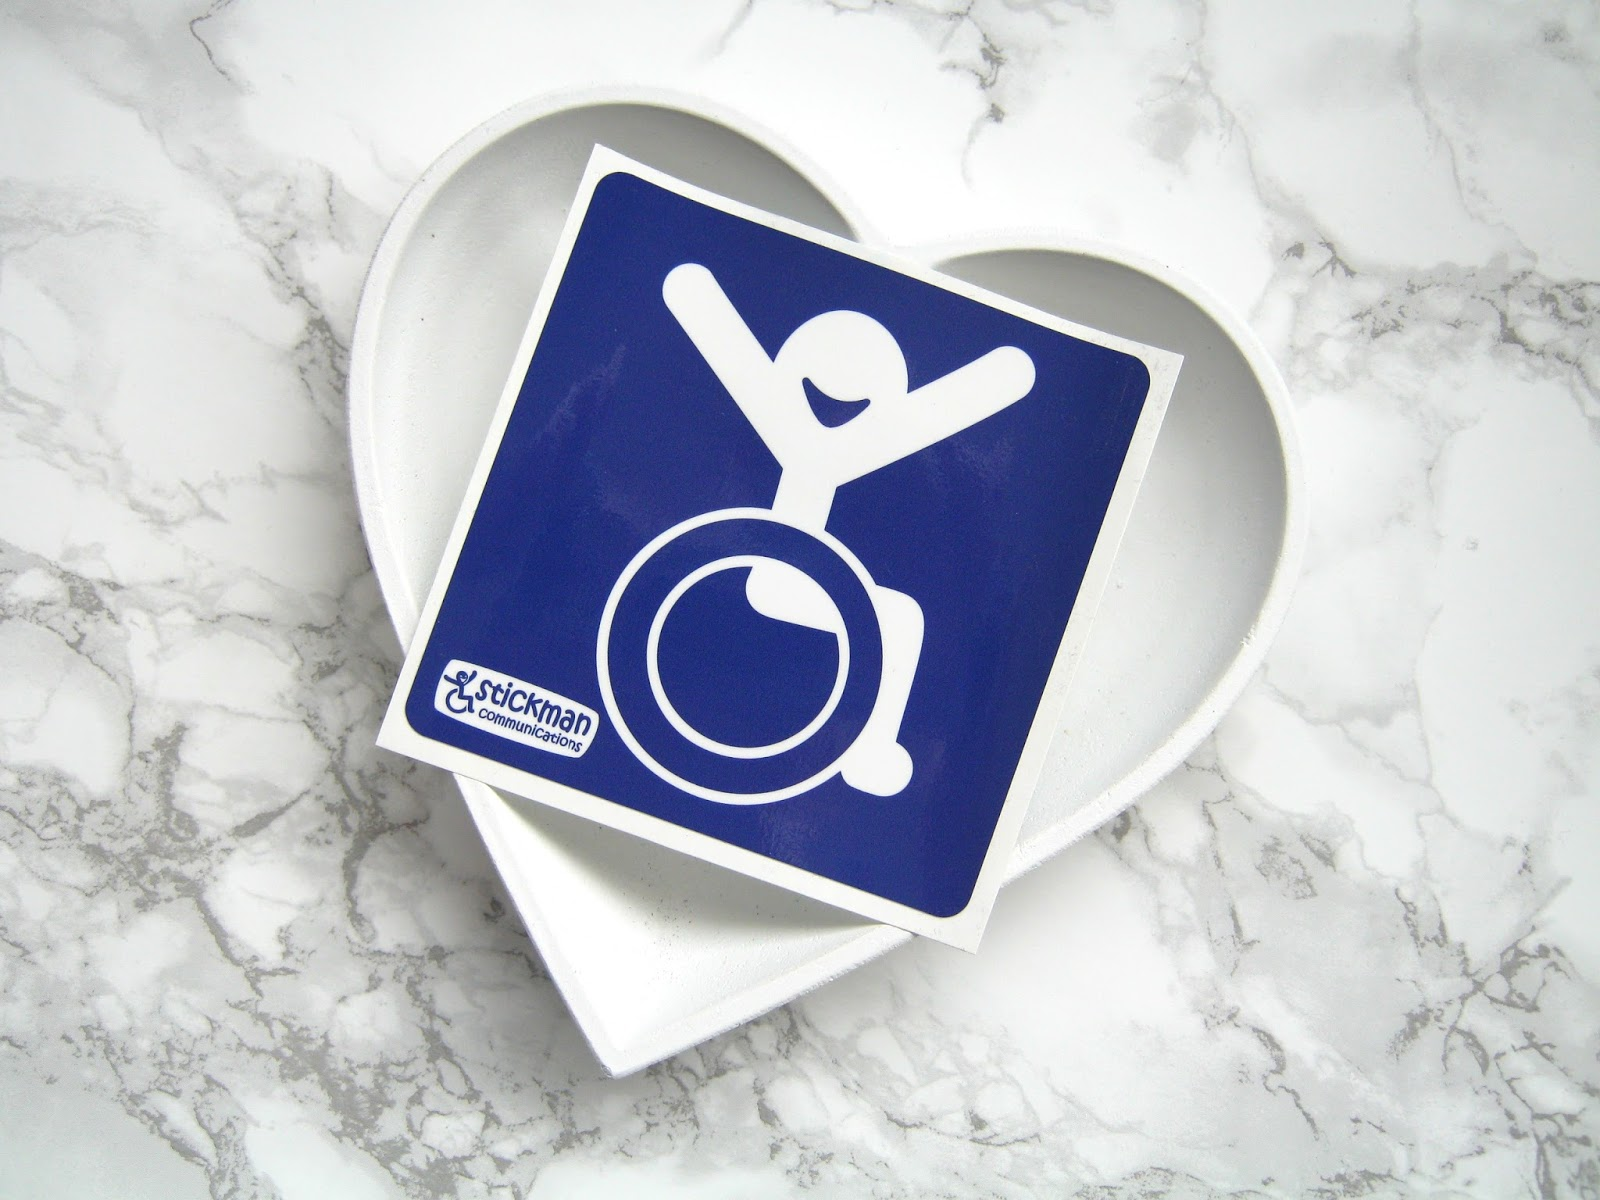 Marble background with a white heart shaped dish on, a blue sticker with a wheelchair symbol rests on the dish